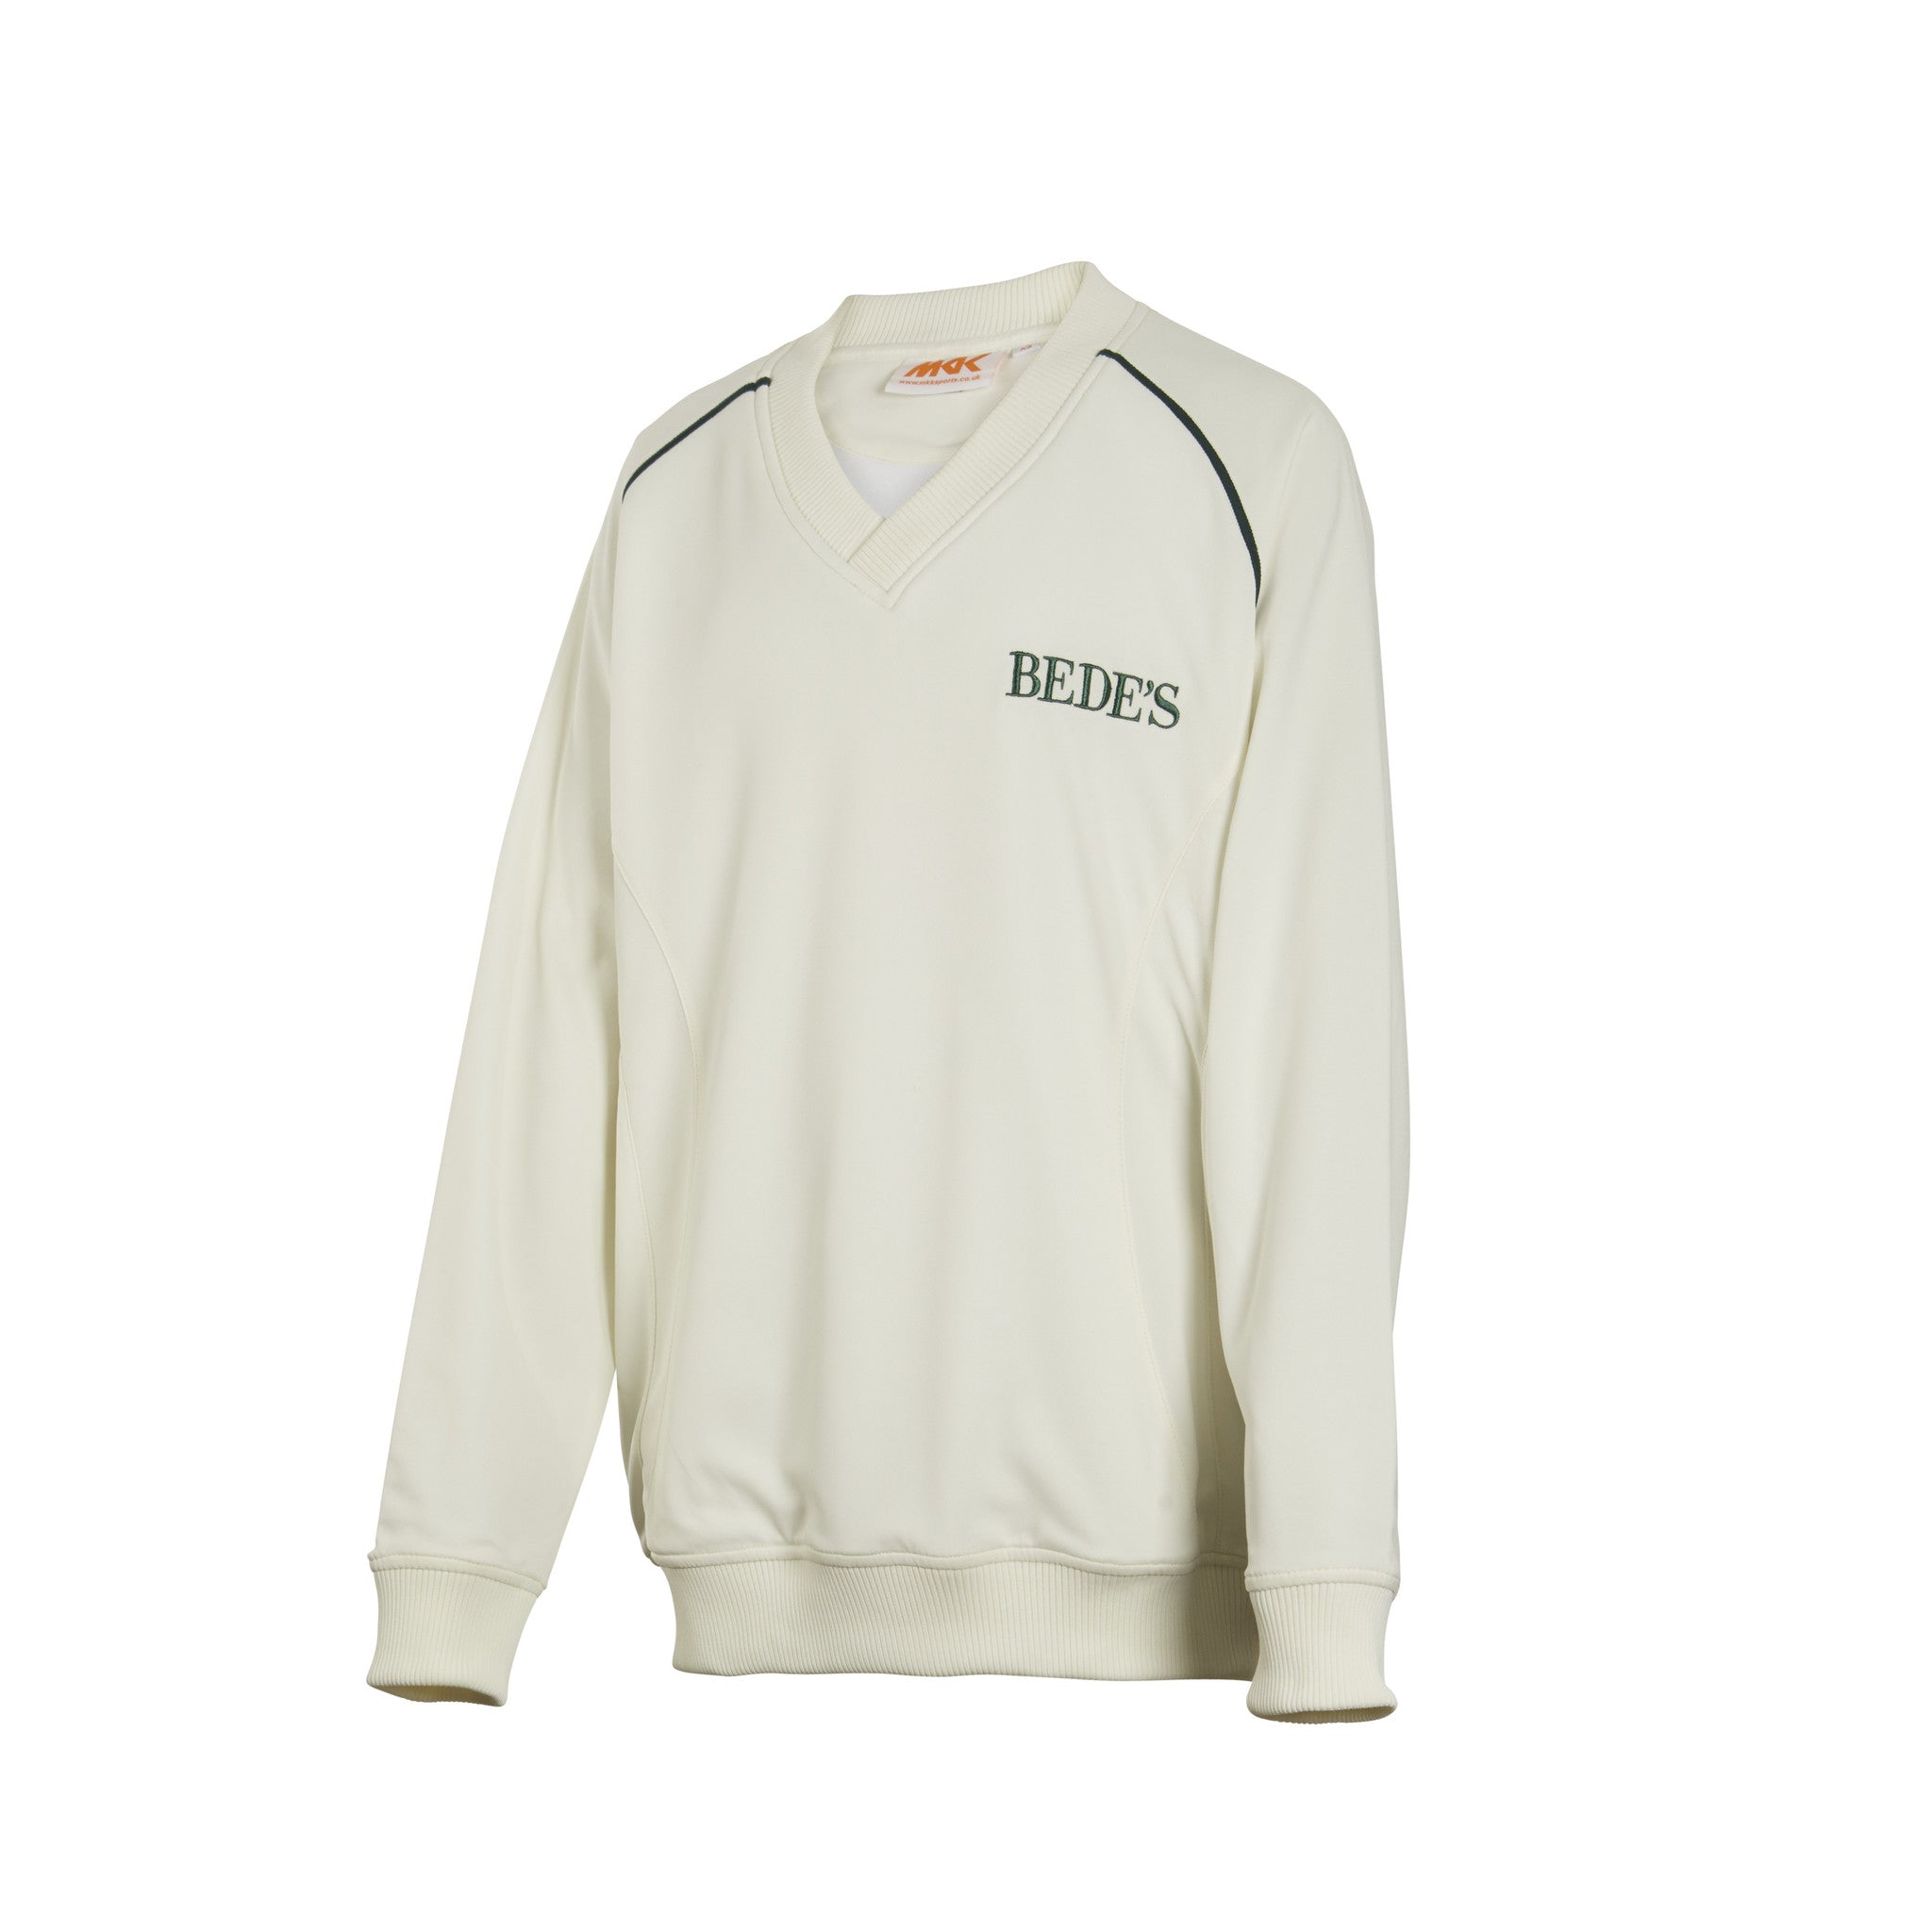 Senior Cricket Sweatshirt